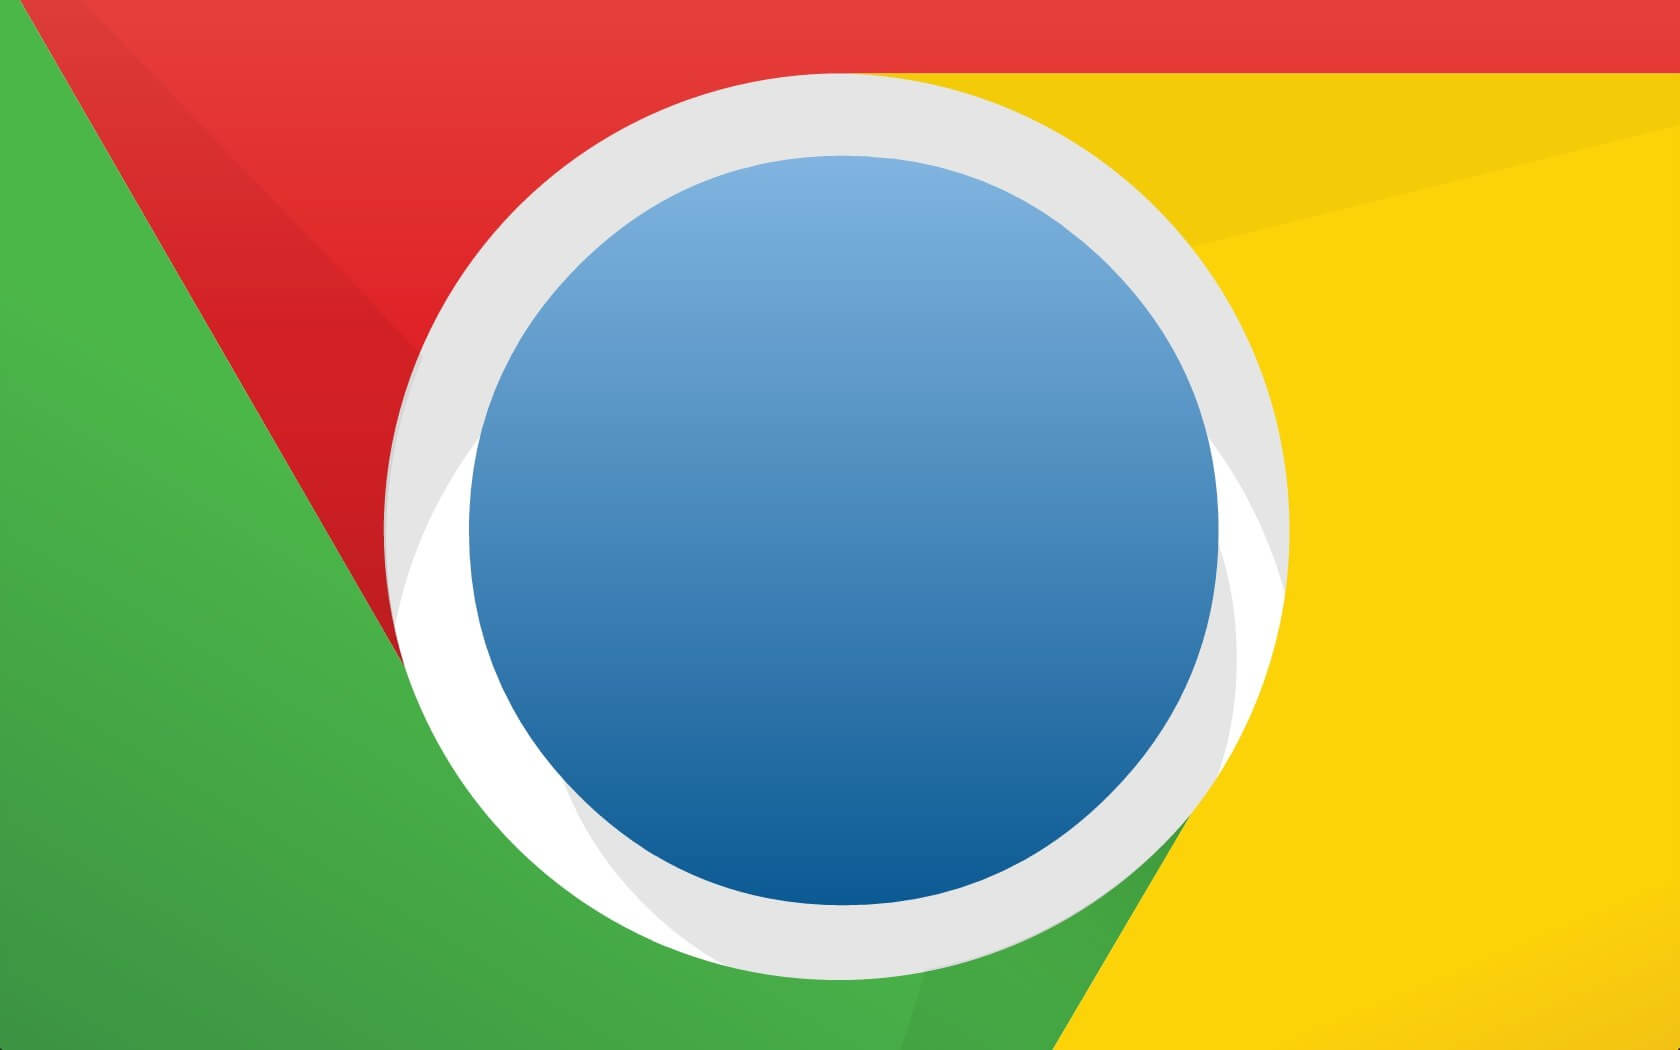 Chrome will soon warn you about tricky mobile subscription signups